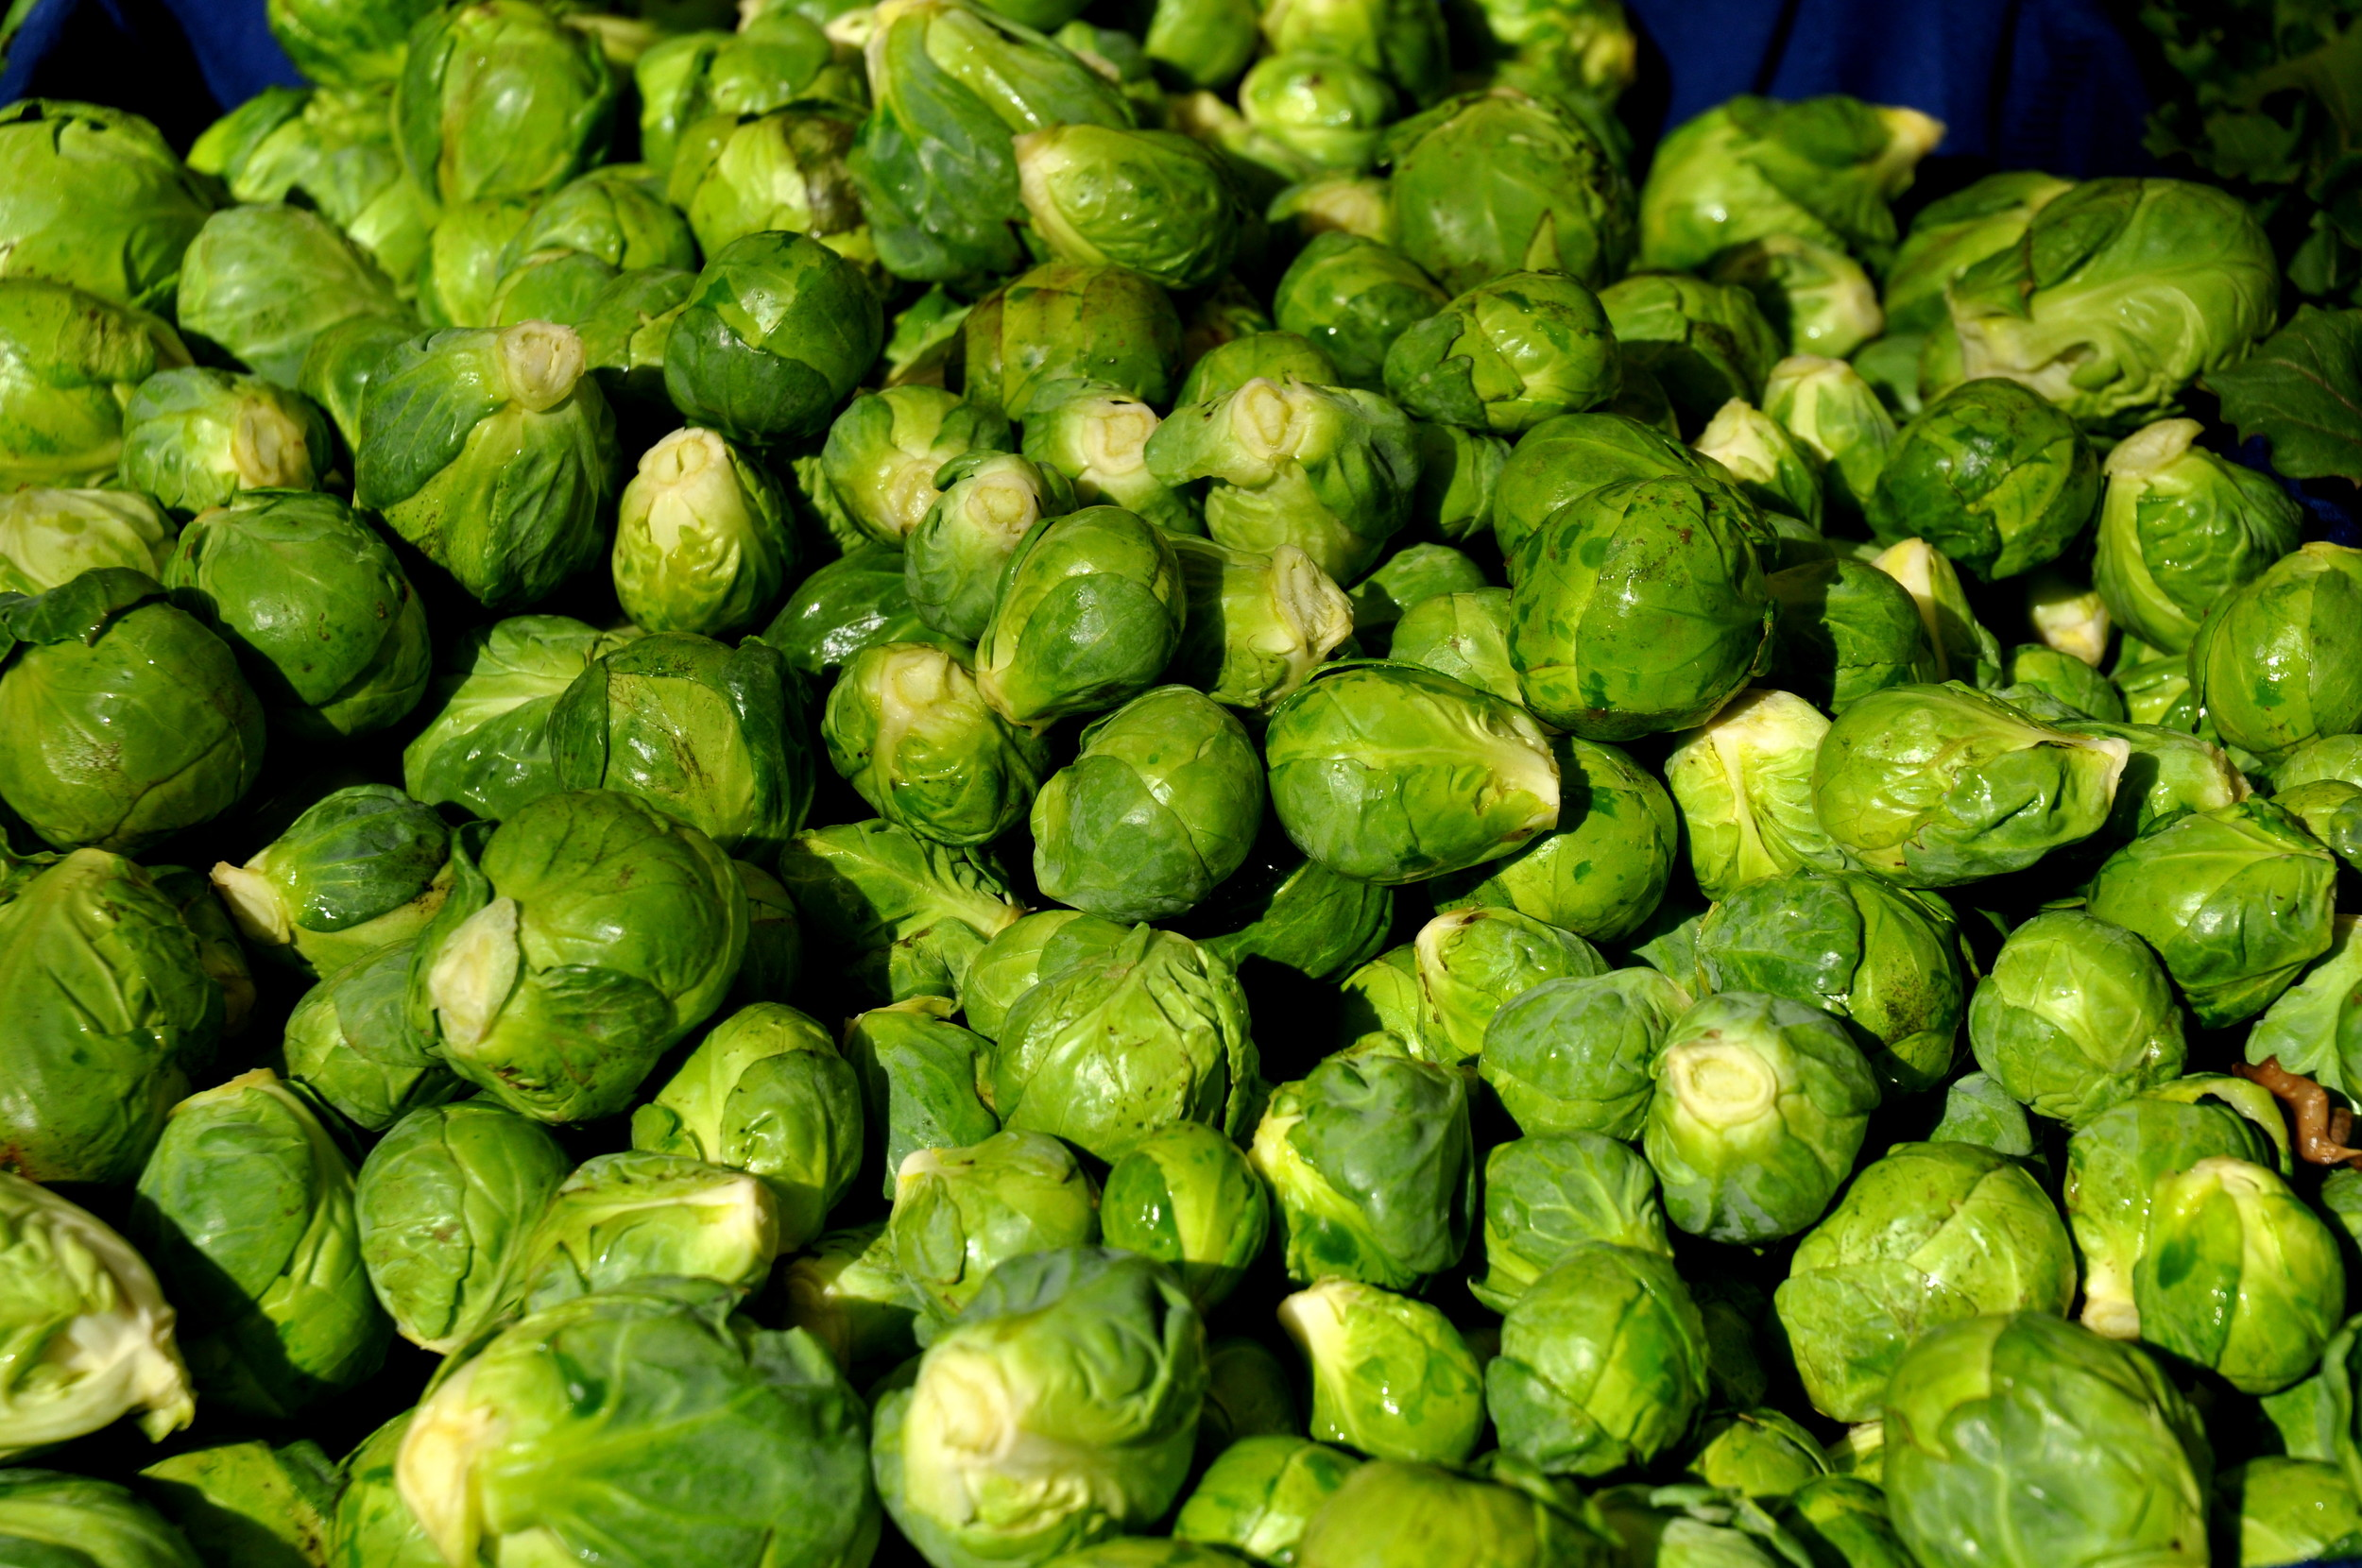 Brussels sprouts from Nash's Organic Produce at Ballard Farmers Market. Copyright Zachary D. Lyons.